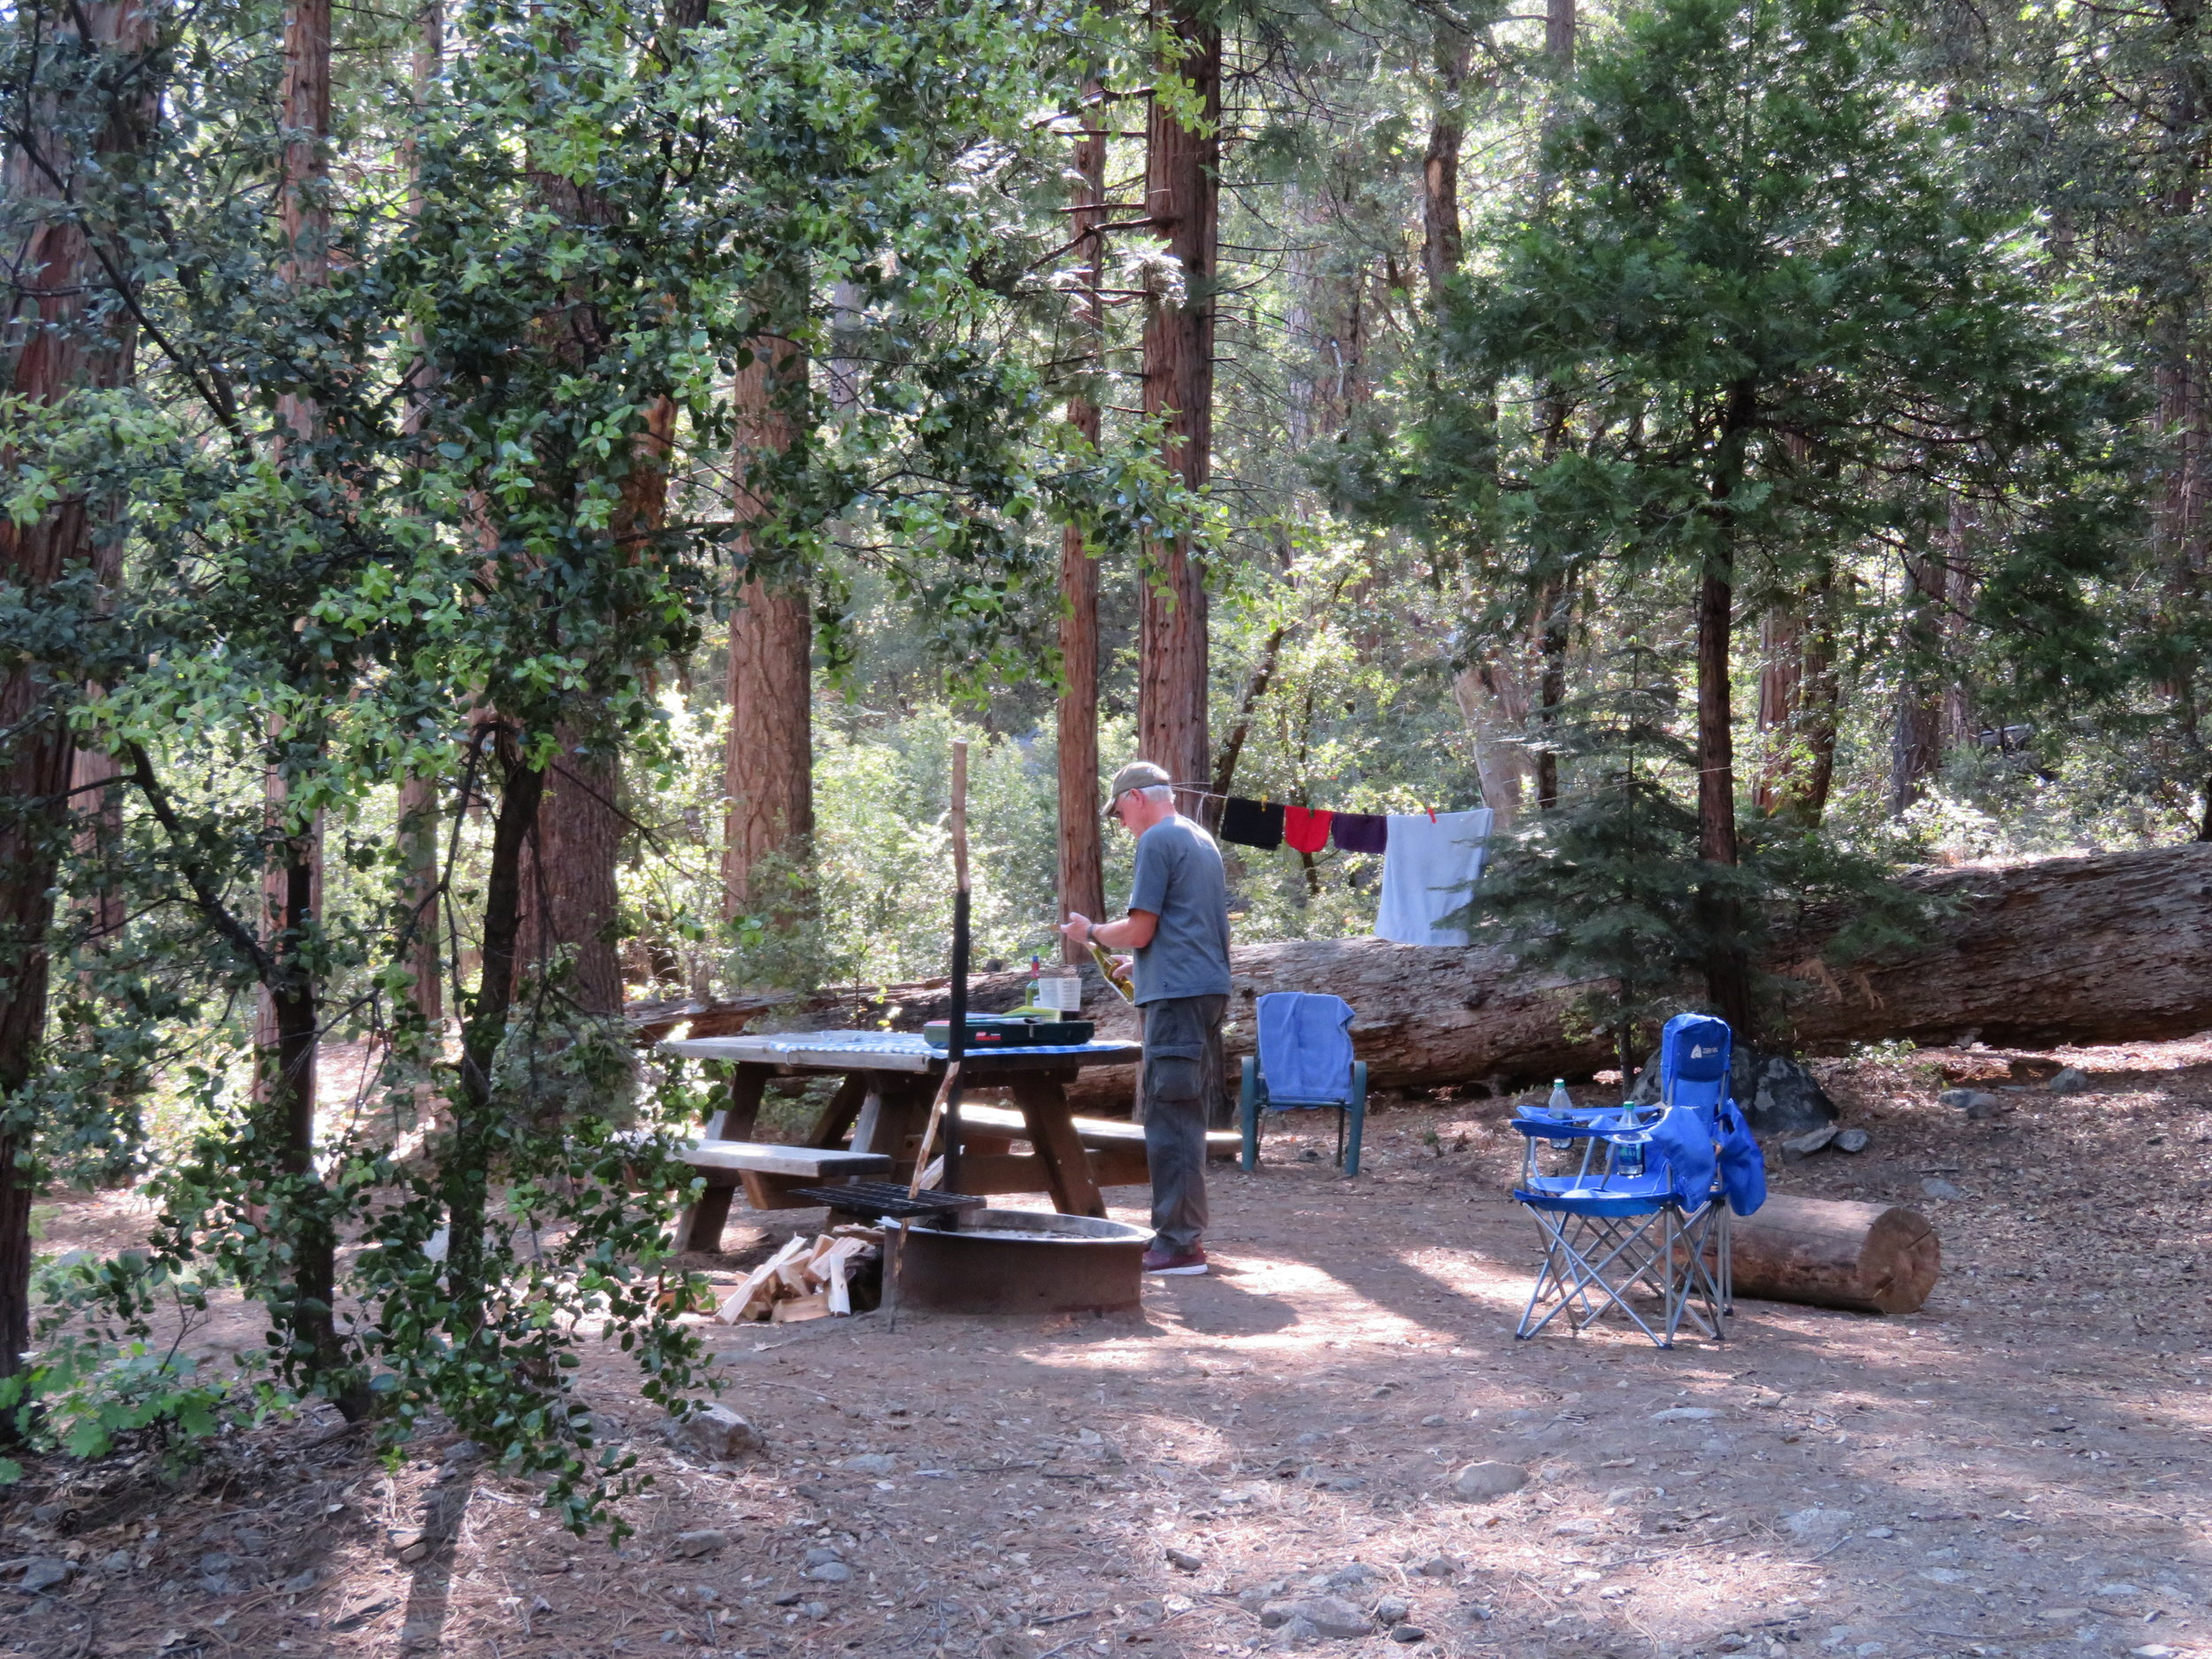 Nice campground ... woodsy and serene.